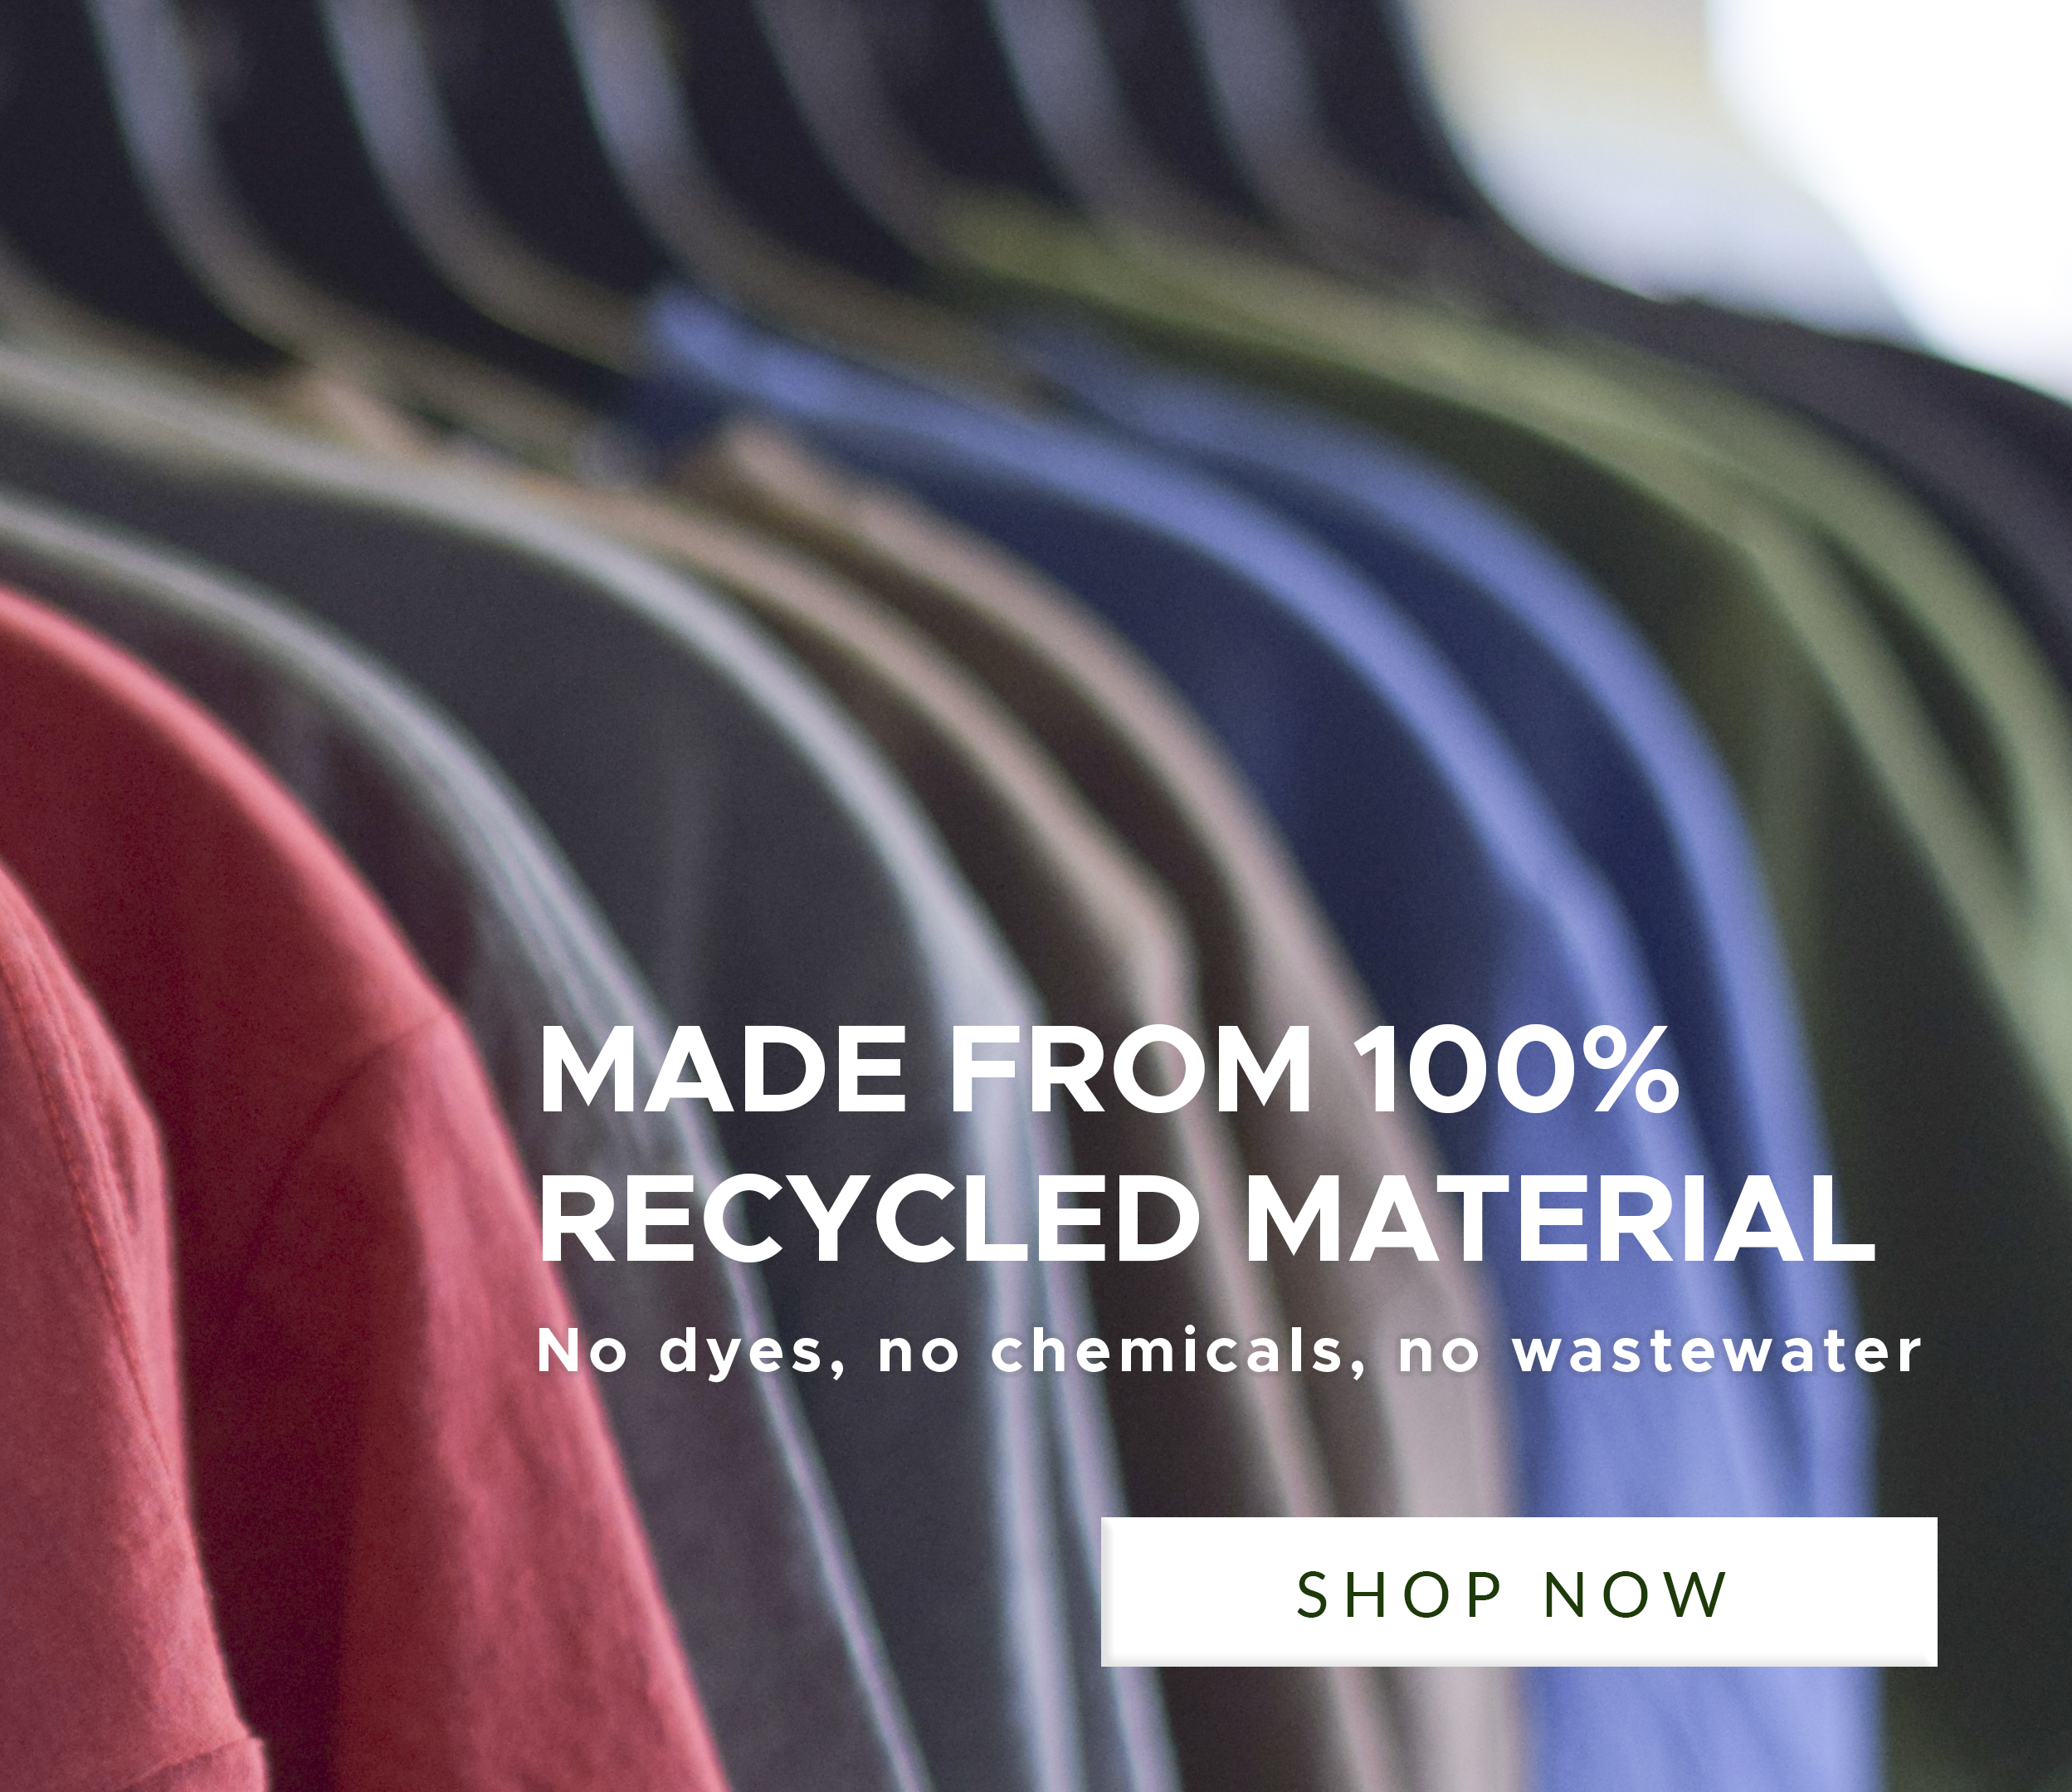 2a283f788a Recover Brands | Eco-Friendly 100% Recycled Apparel